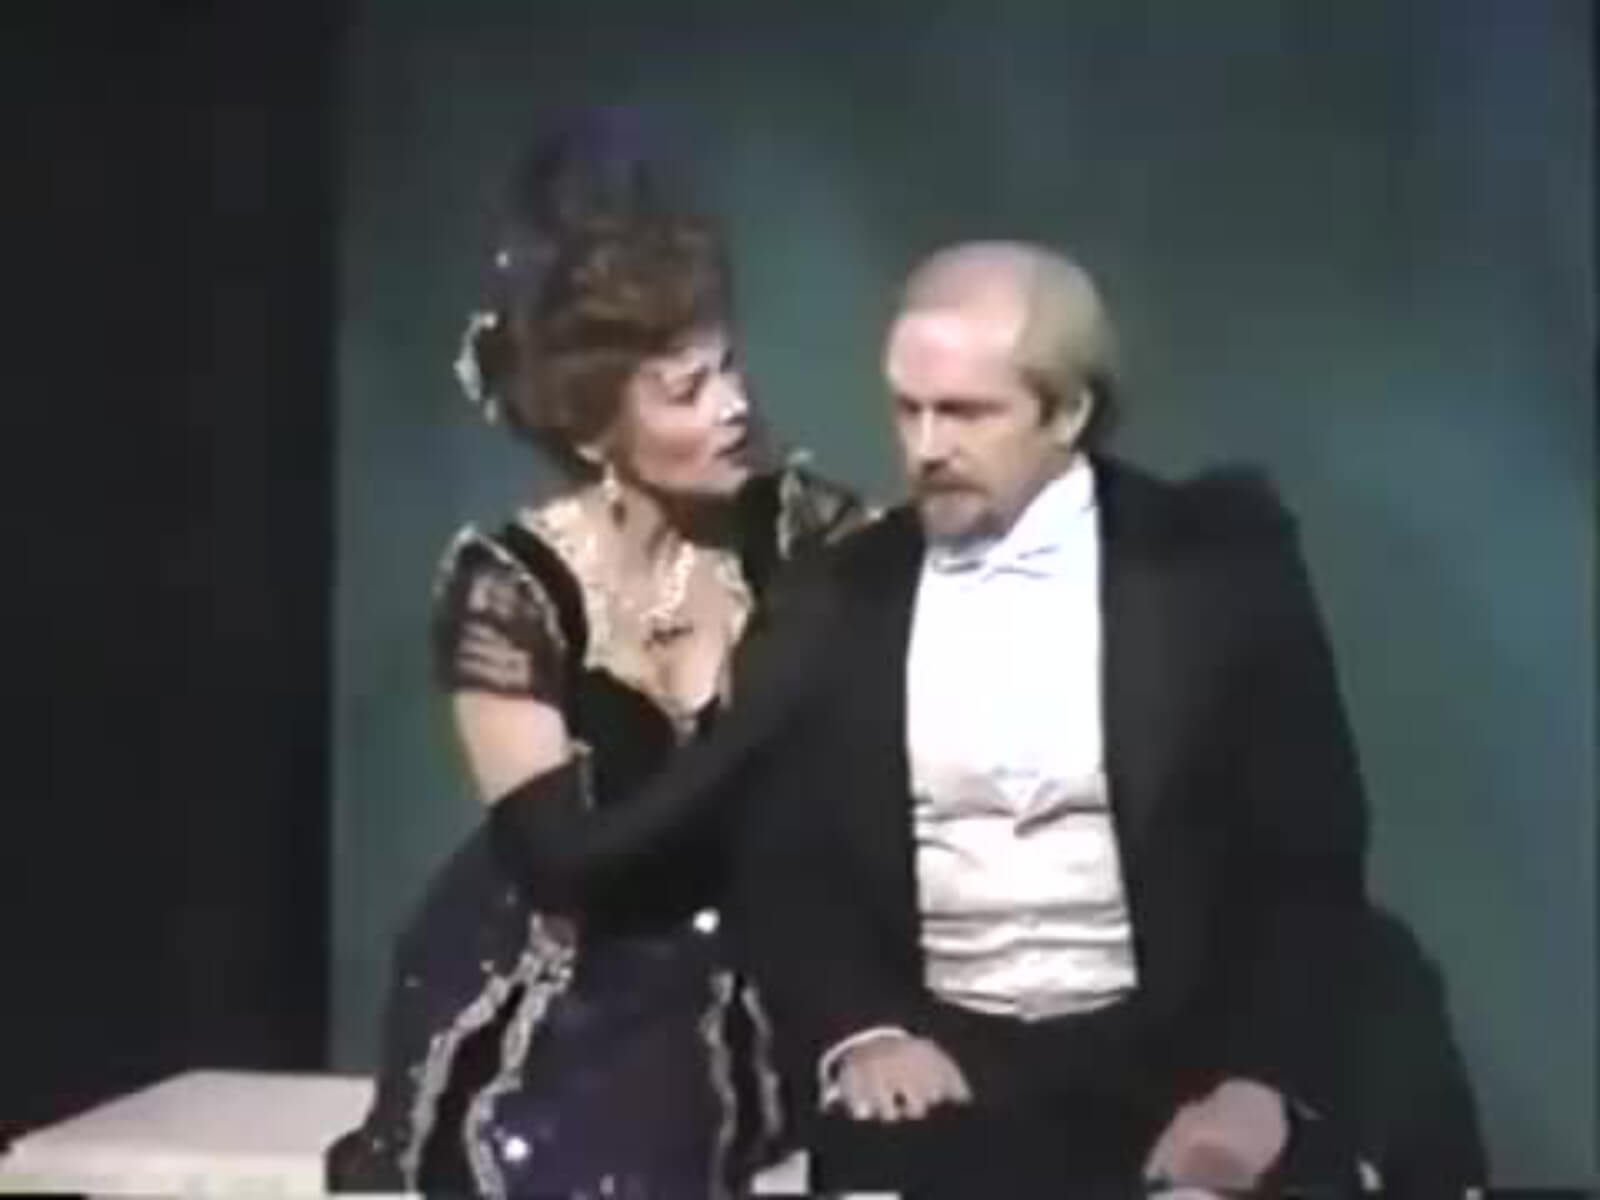 Maureen Moore as Countess Charlotte and George Lee Andrews and Frederik Egerman. Charlotte is consoling Frederik because his son ran off with his young wife. They are dressed in black tie and an elegant gown in A Little Night Music.